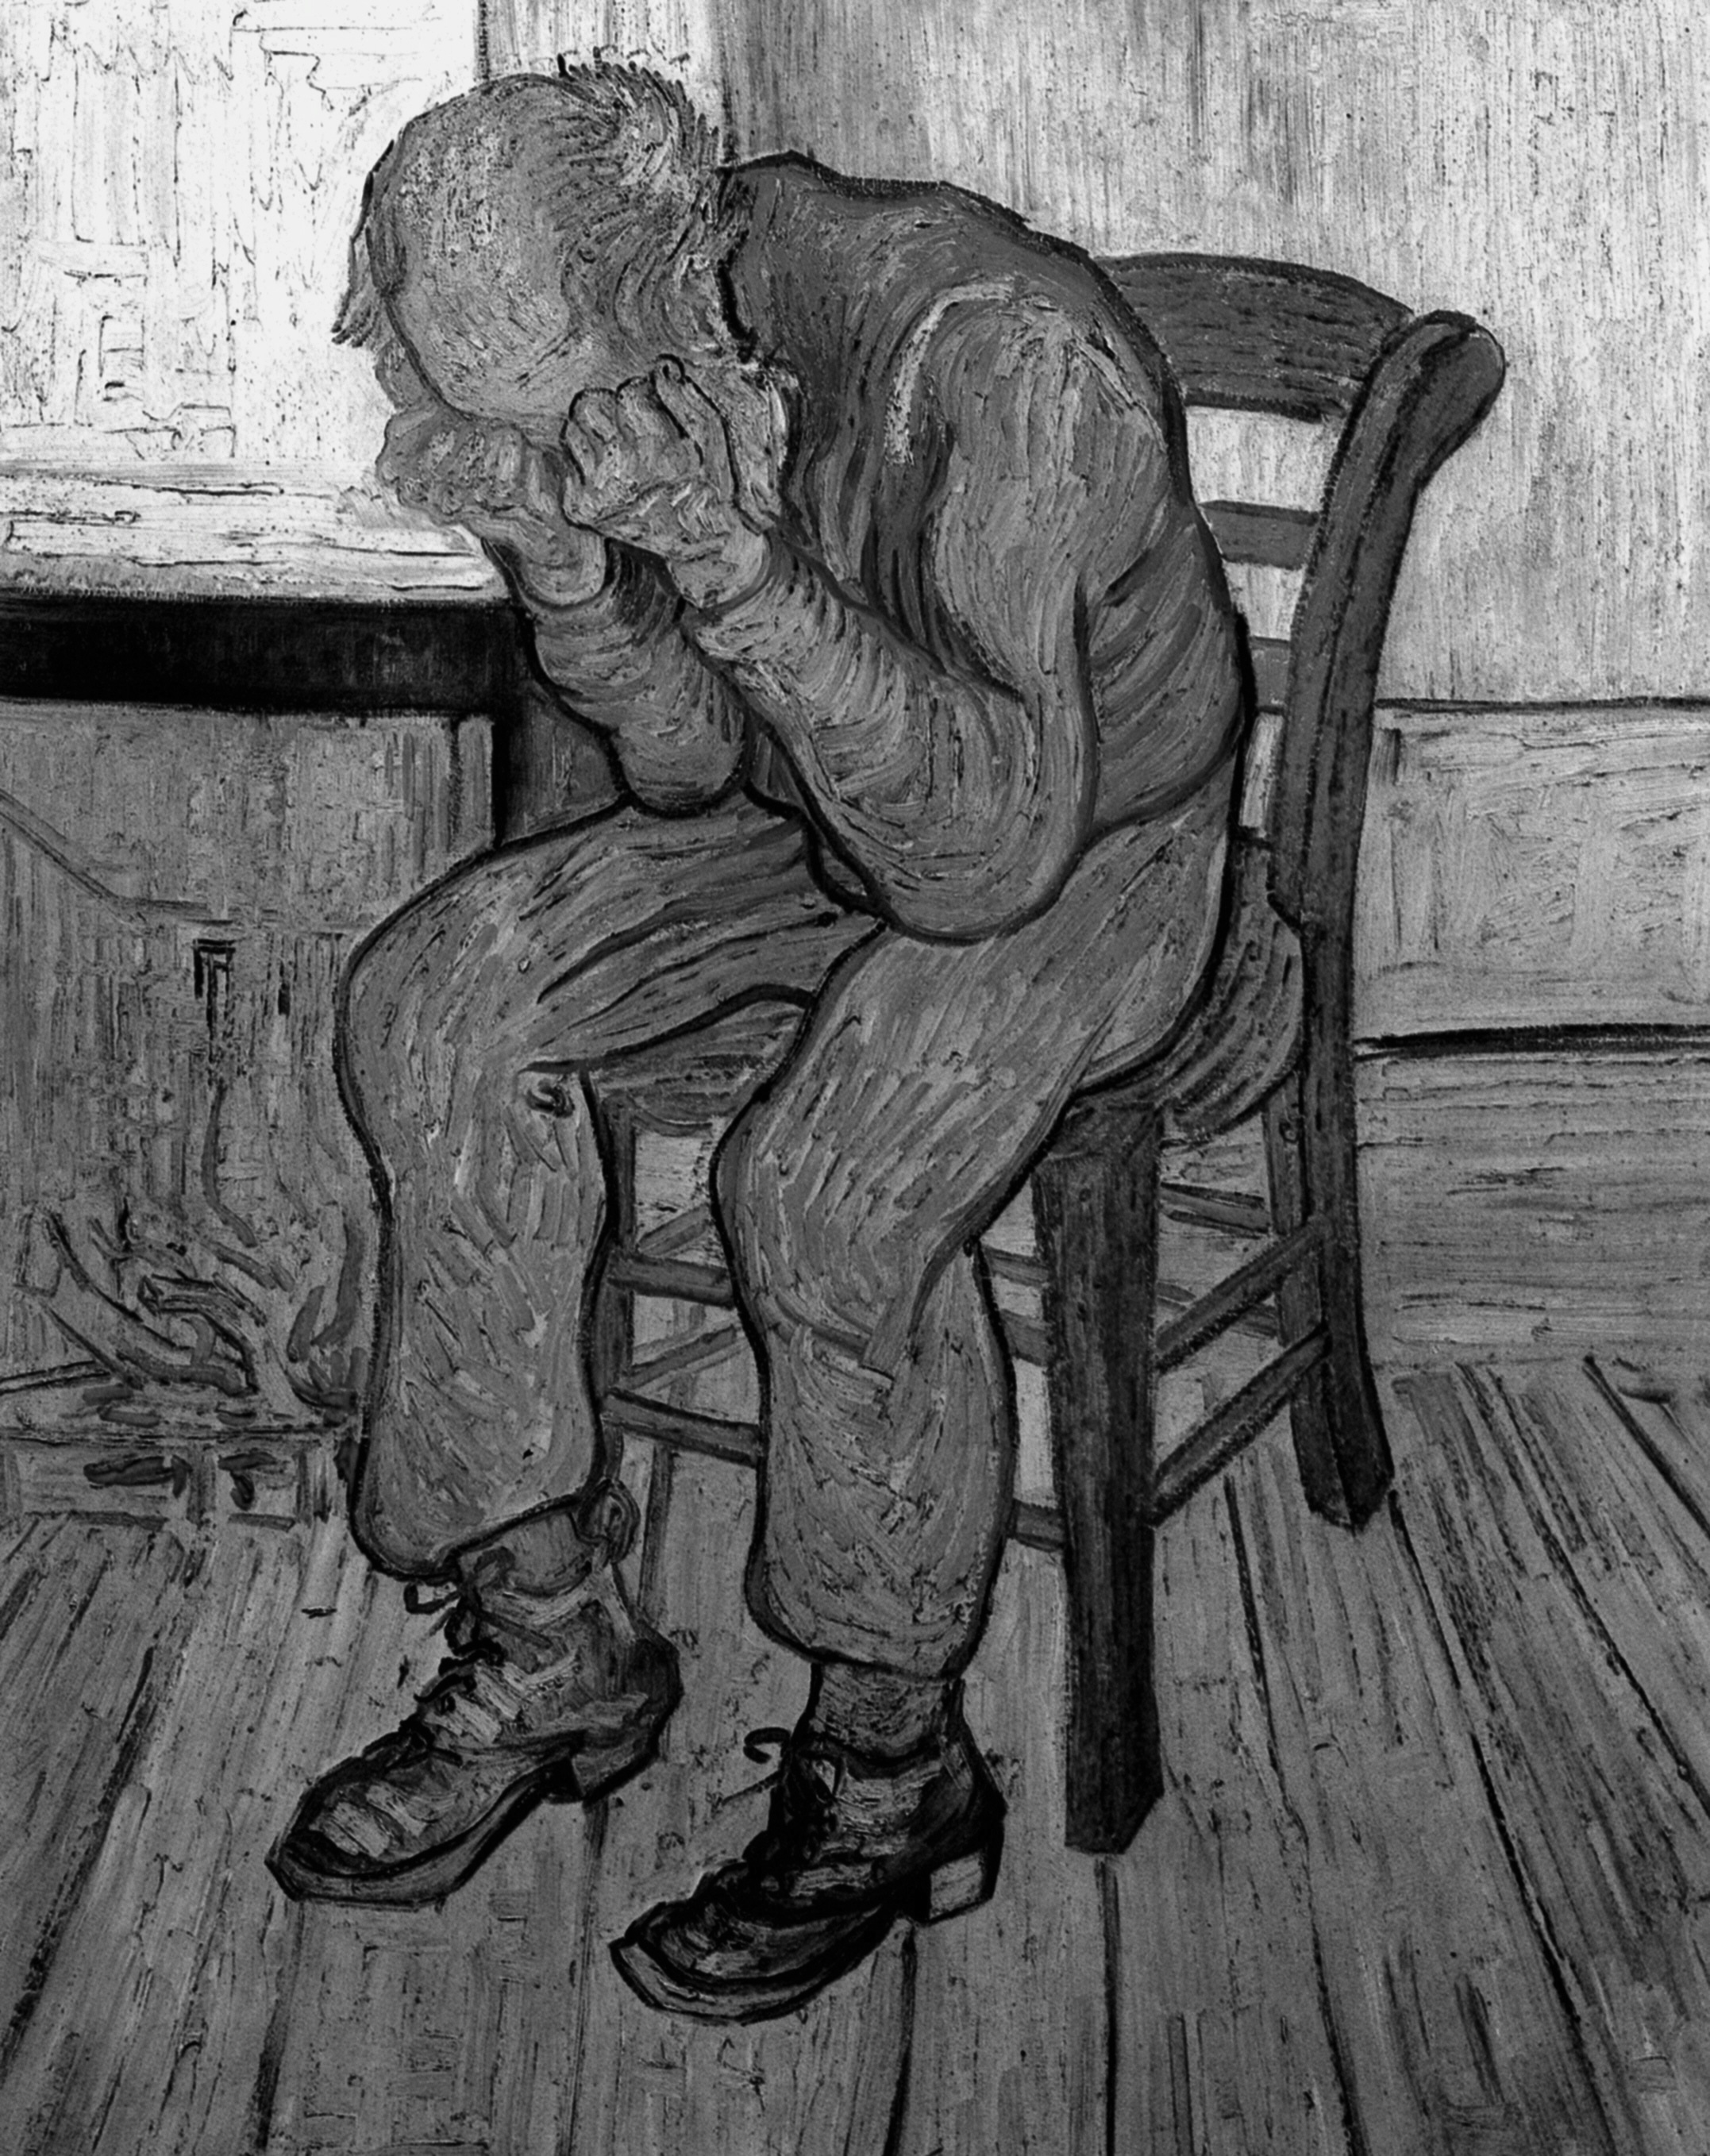 old-man-in-sorrow-on-the-threshold-of-eternity-1890 2